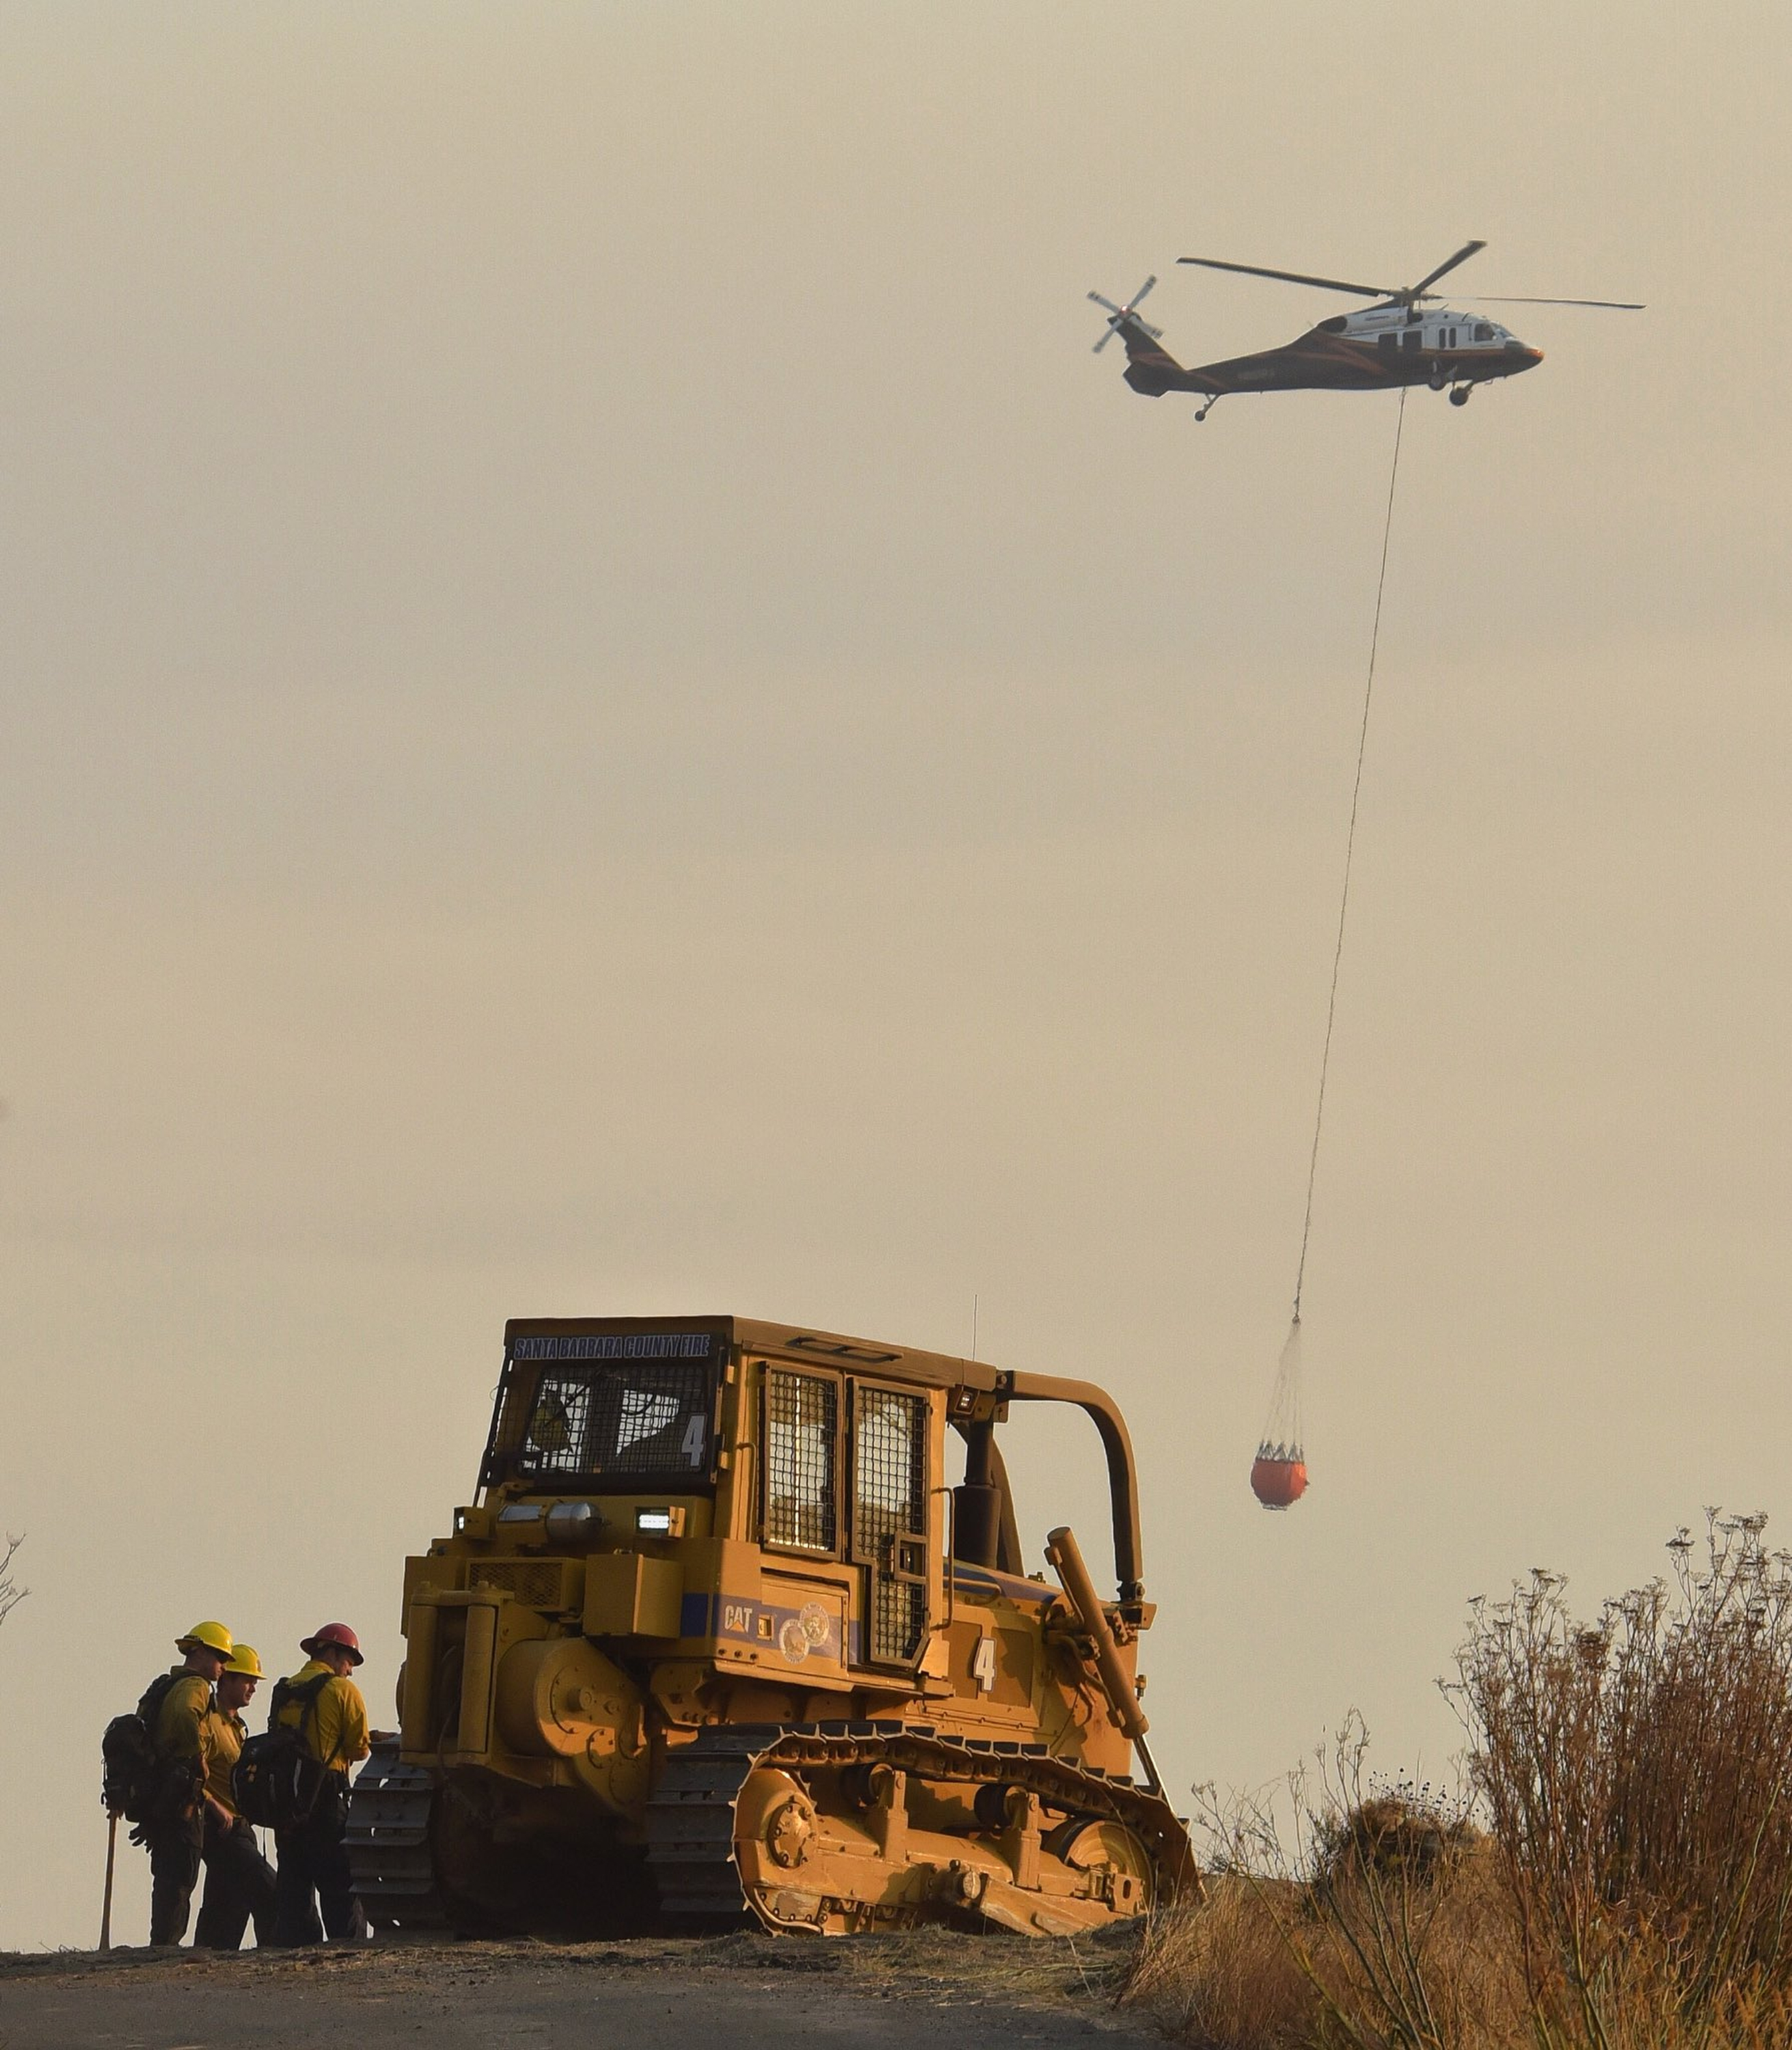 In this photo provided by the Santa Barbara County Fire Department, firefighters and a bulldozer from Santa Barbara County Fire watch from El Camino Cielo as a helicopter readies to make a water drop on a hot spot above Montecito, Calif., Sunday morning, Dec. 17, 2017. (Mike Eliason/Santa Barbara County Fire Department via AP)